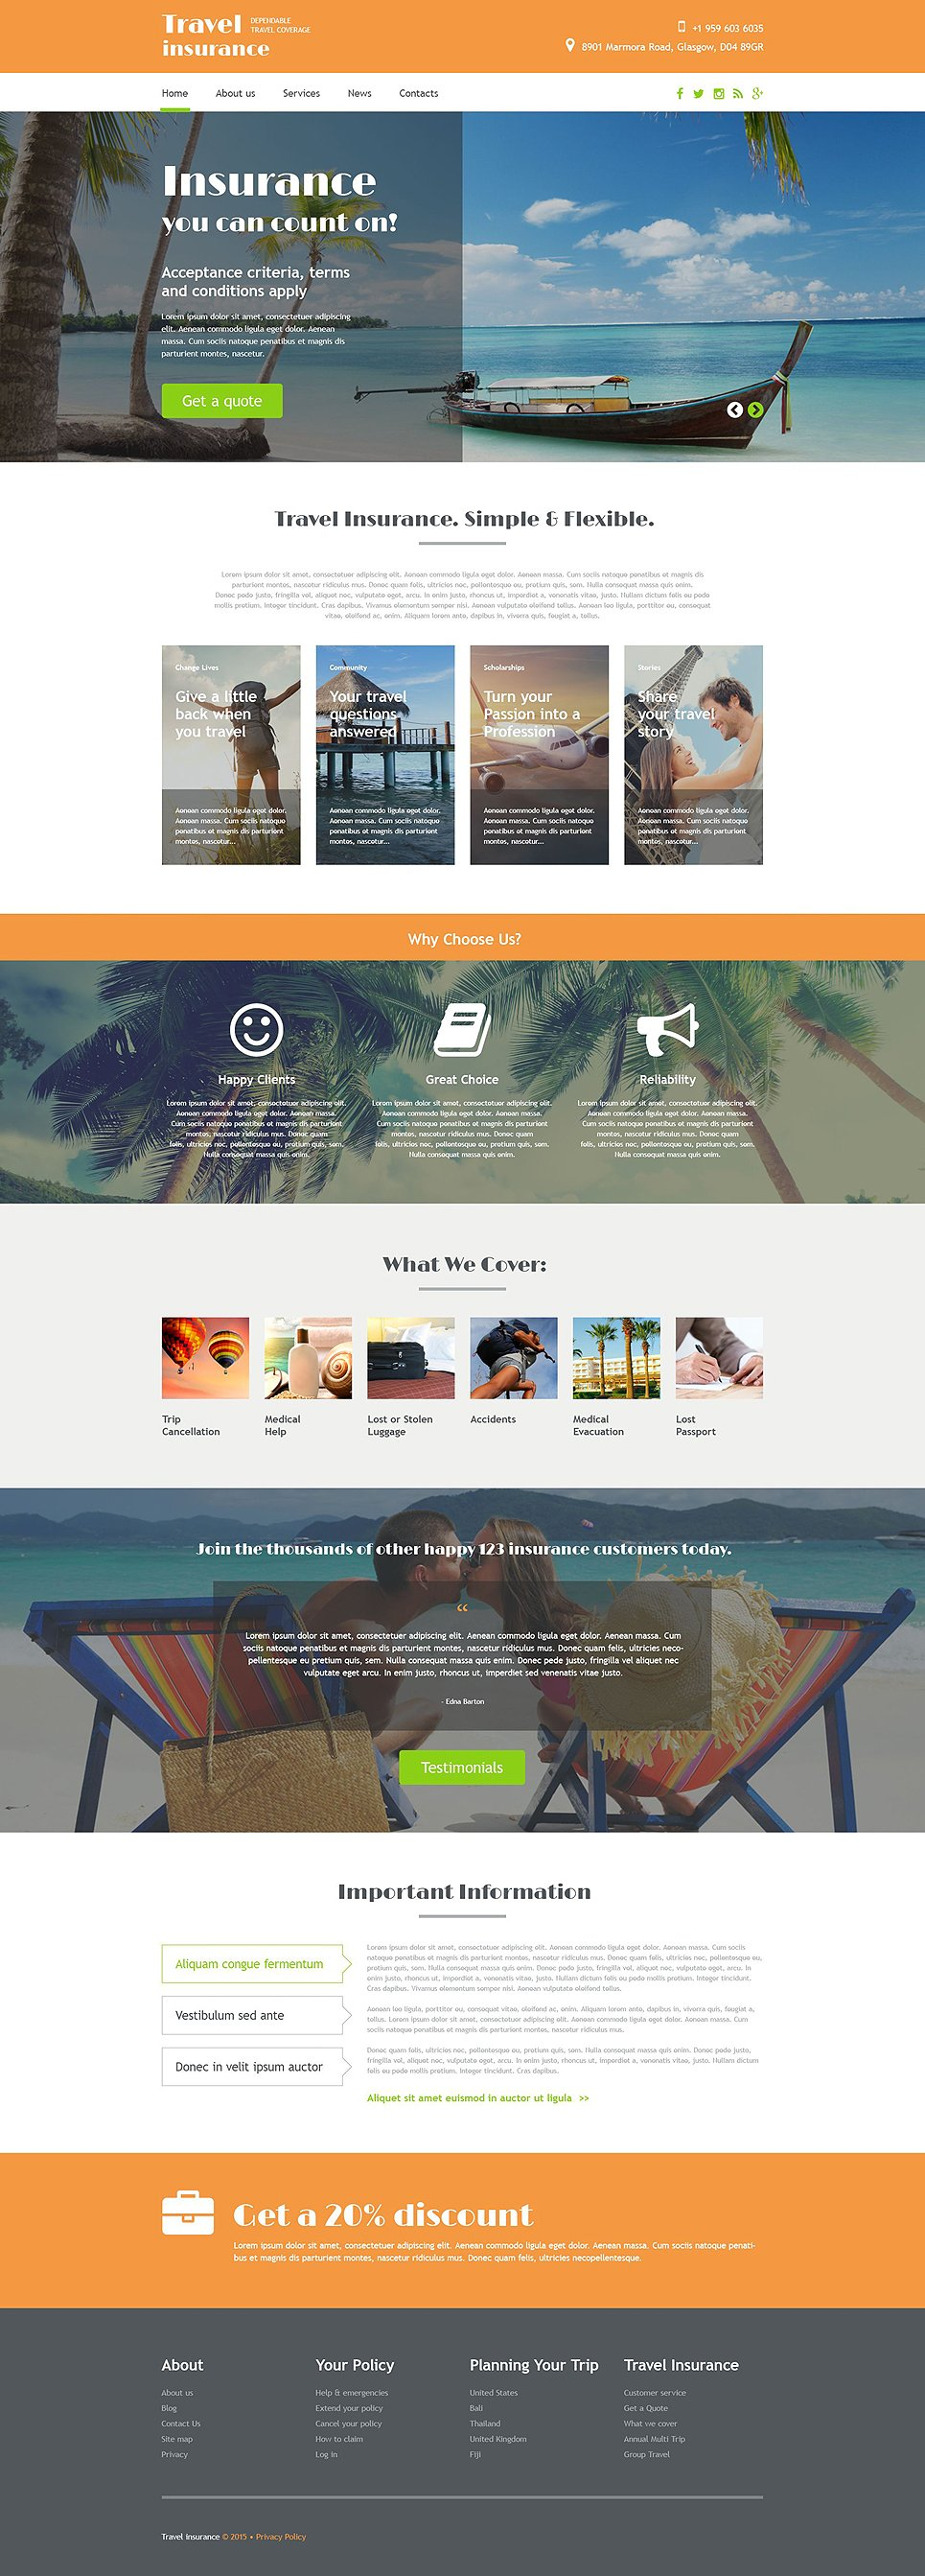 Travel Agency template illustration image